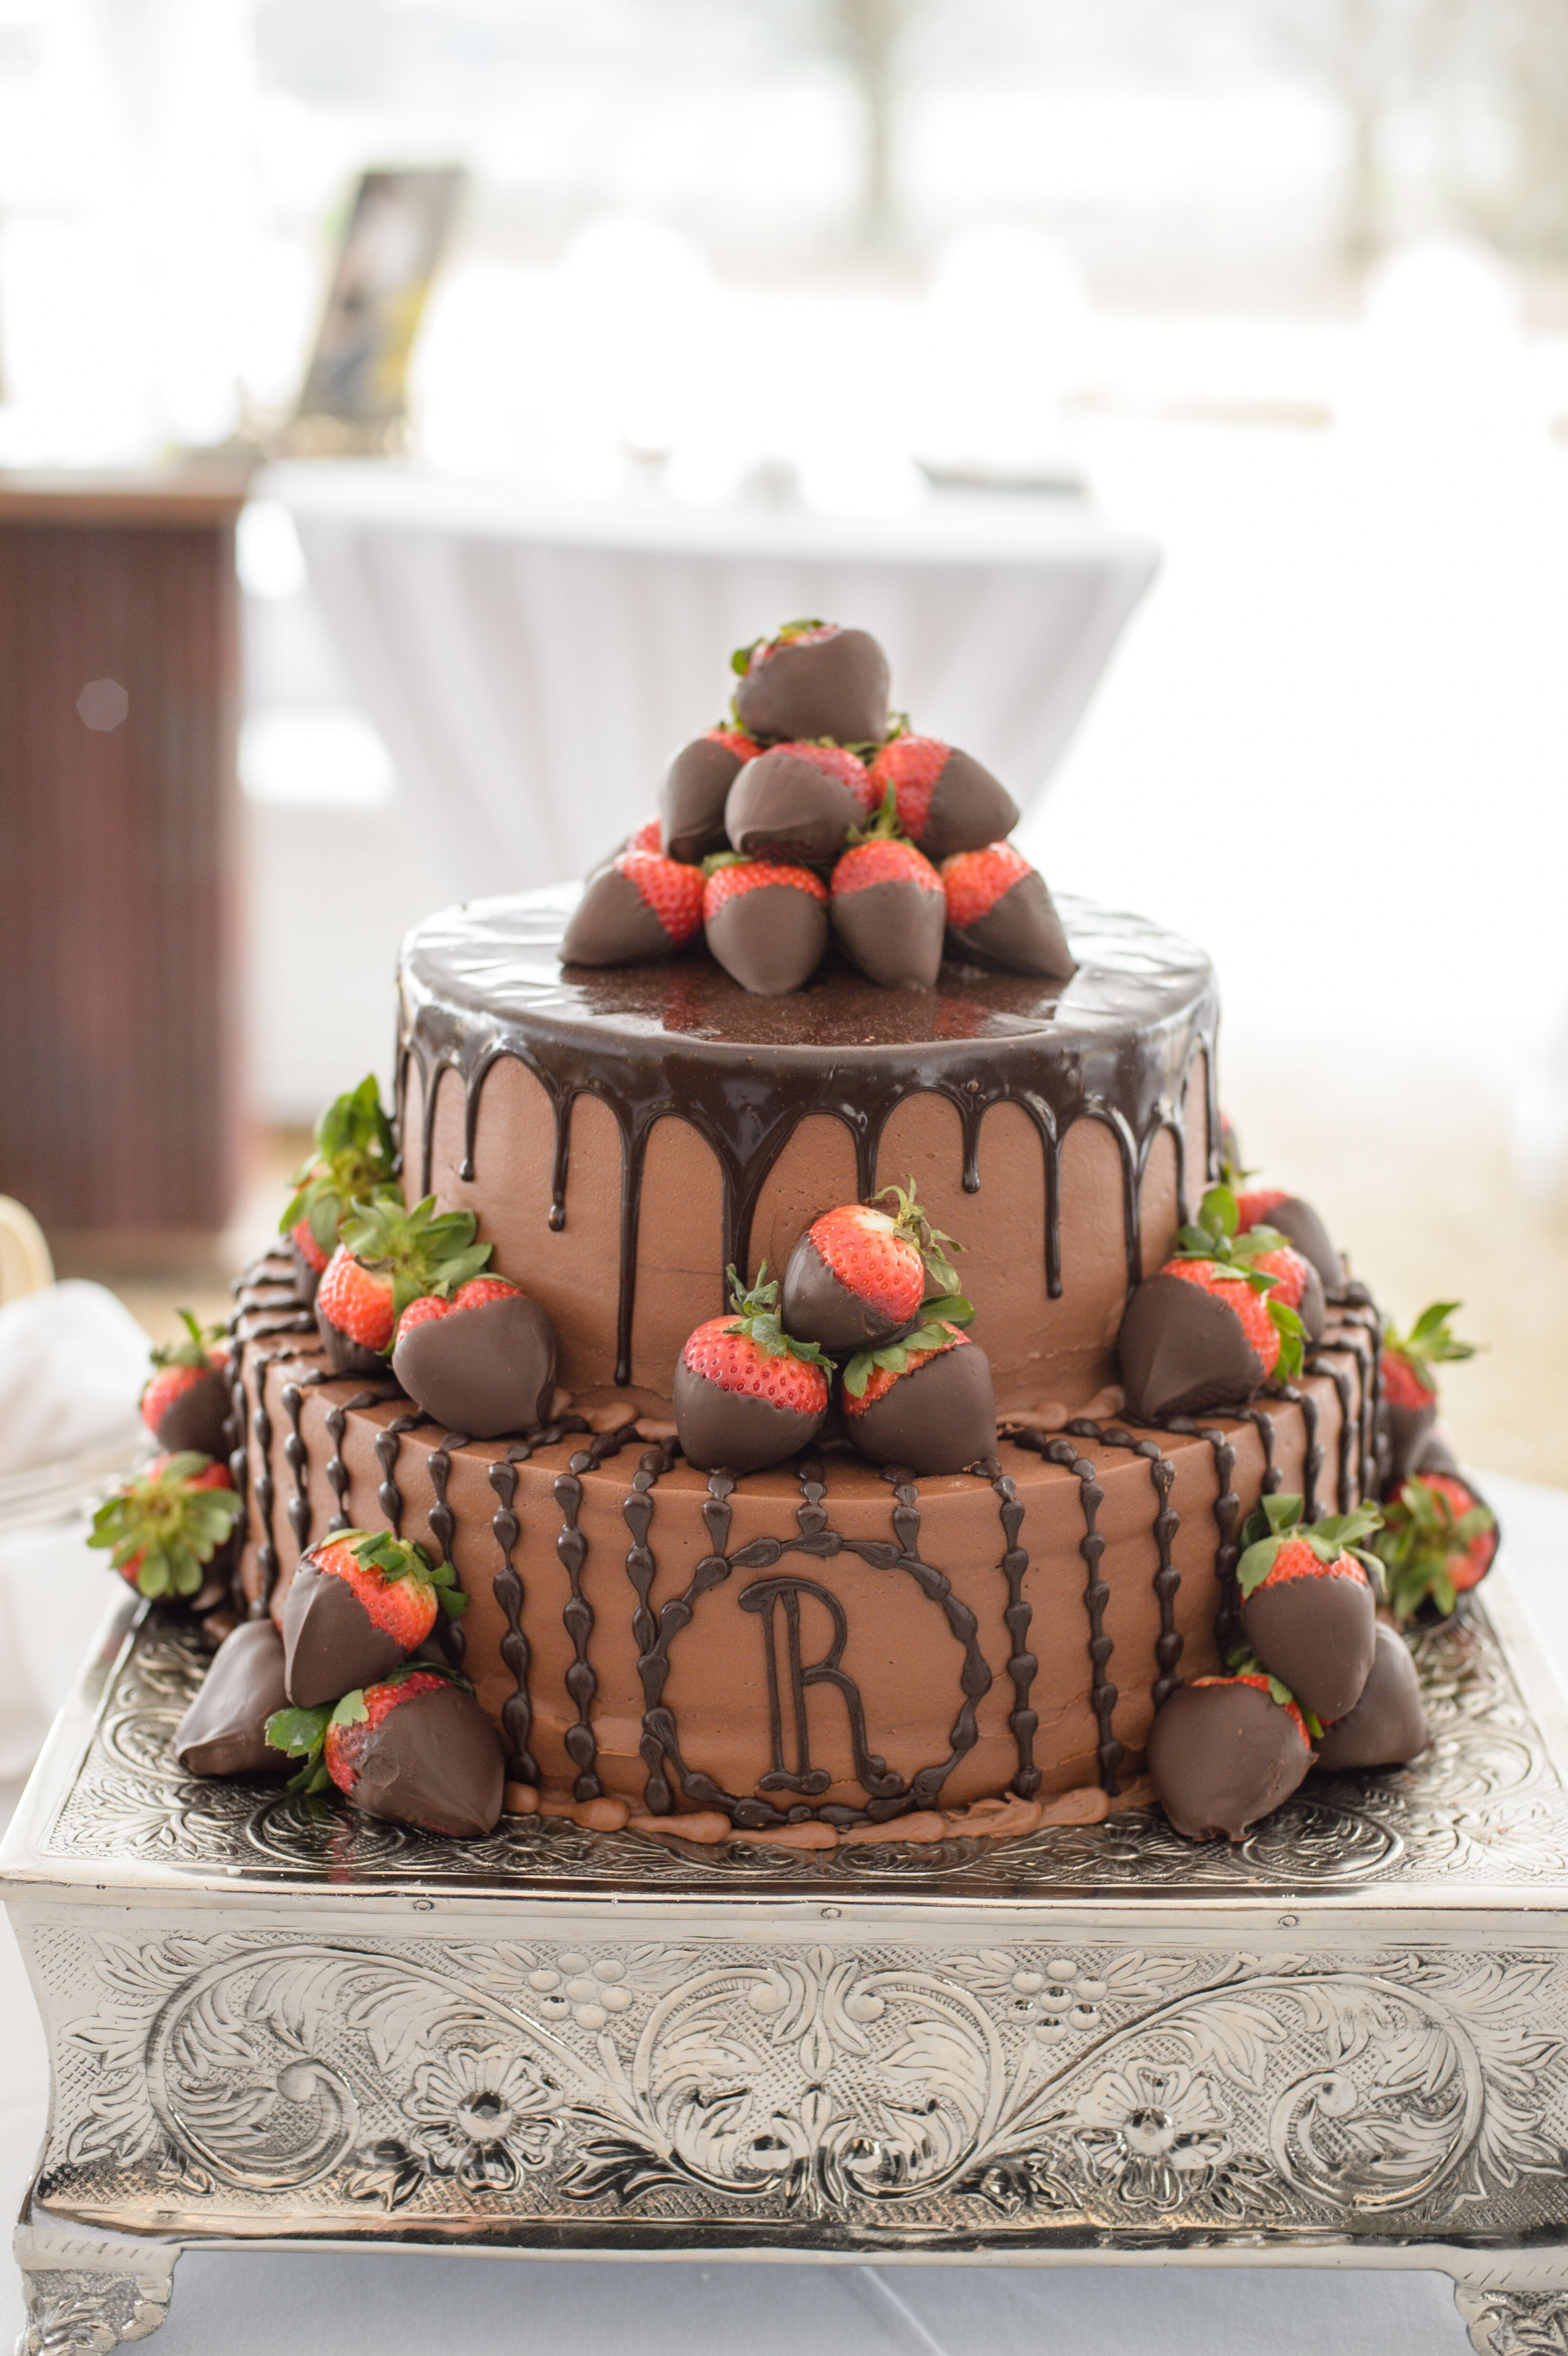 Tiered Grooms Cake With Chocolate Strawberries